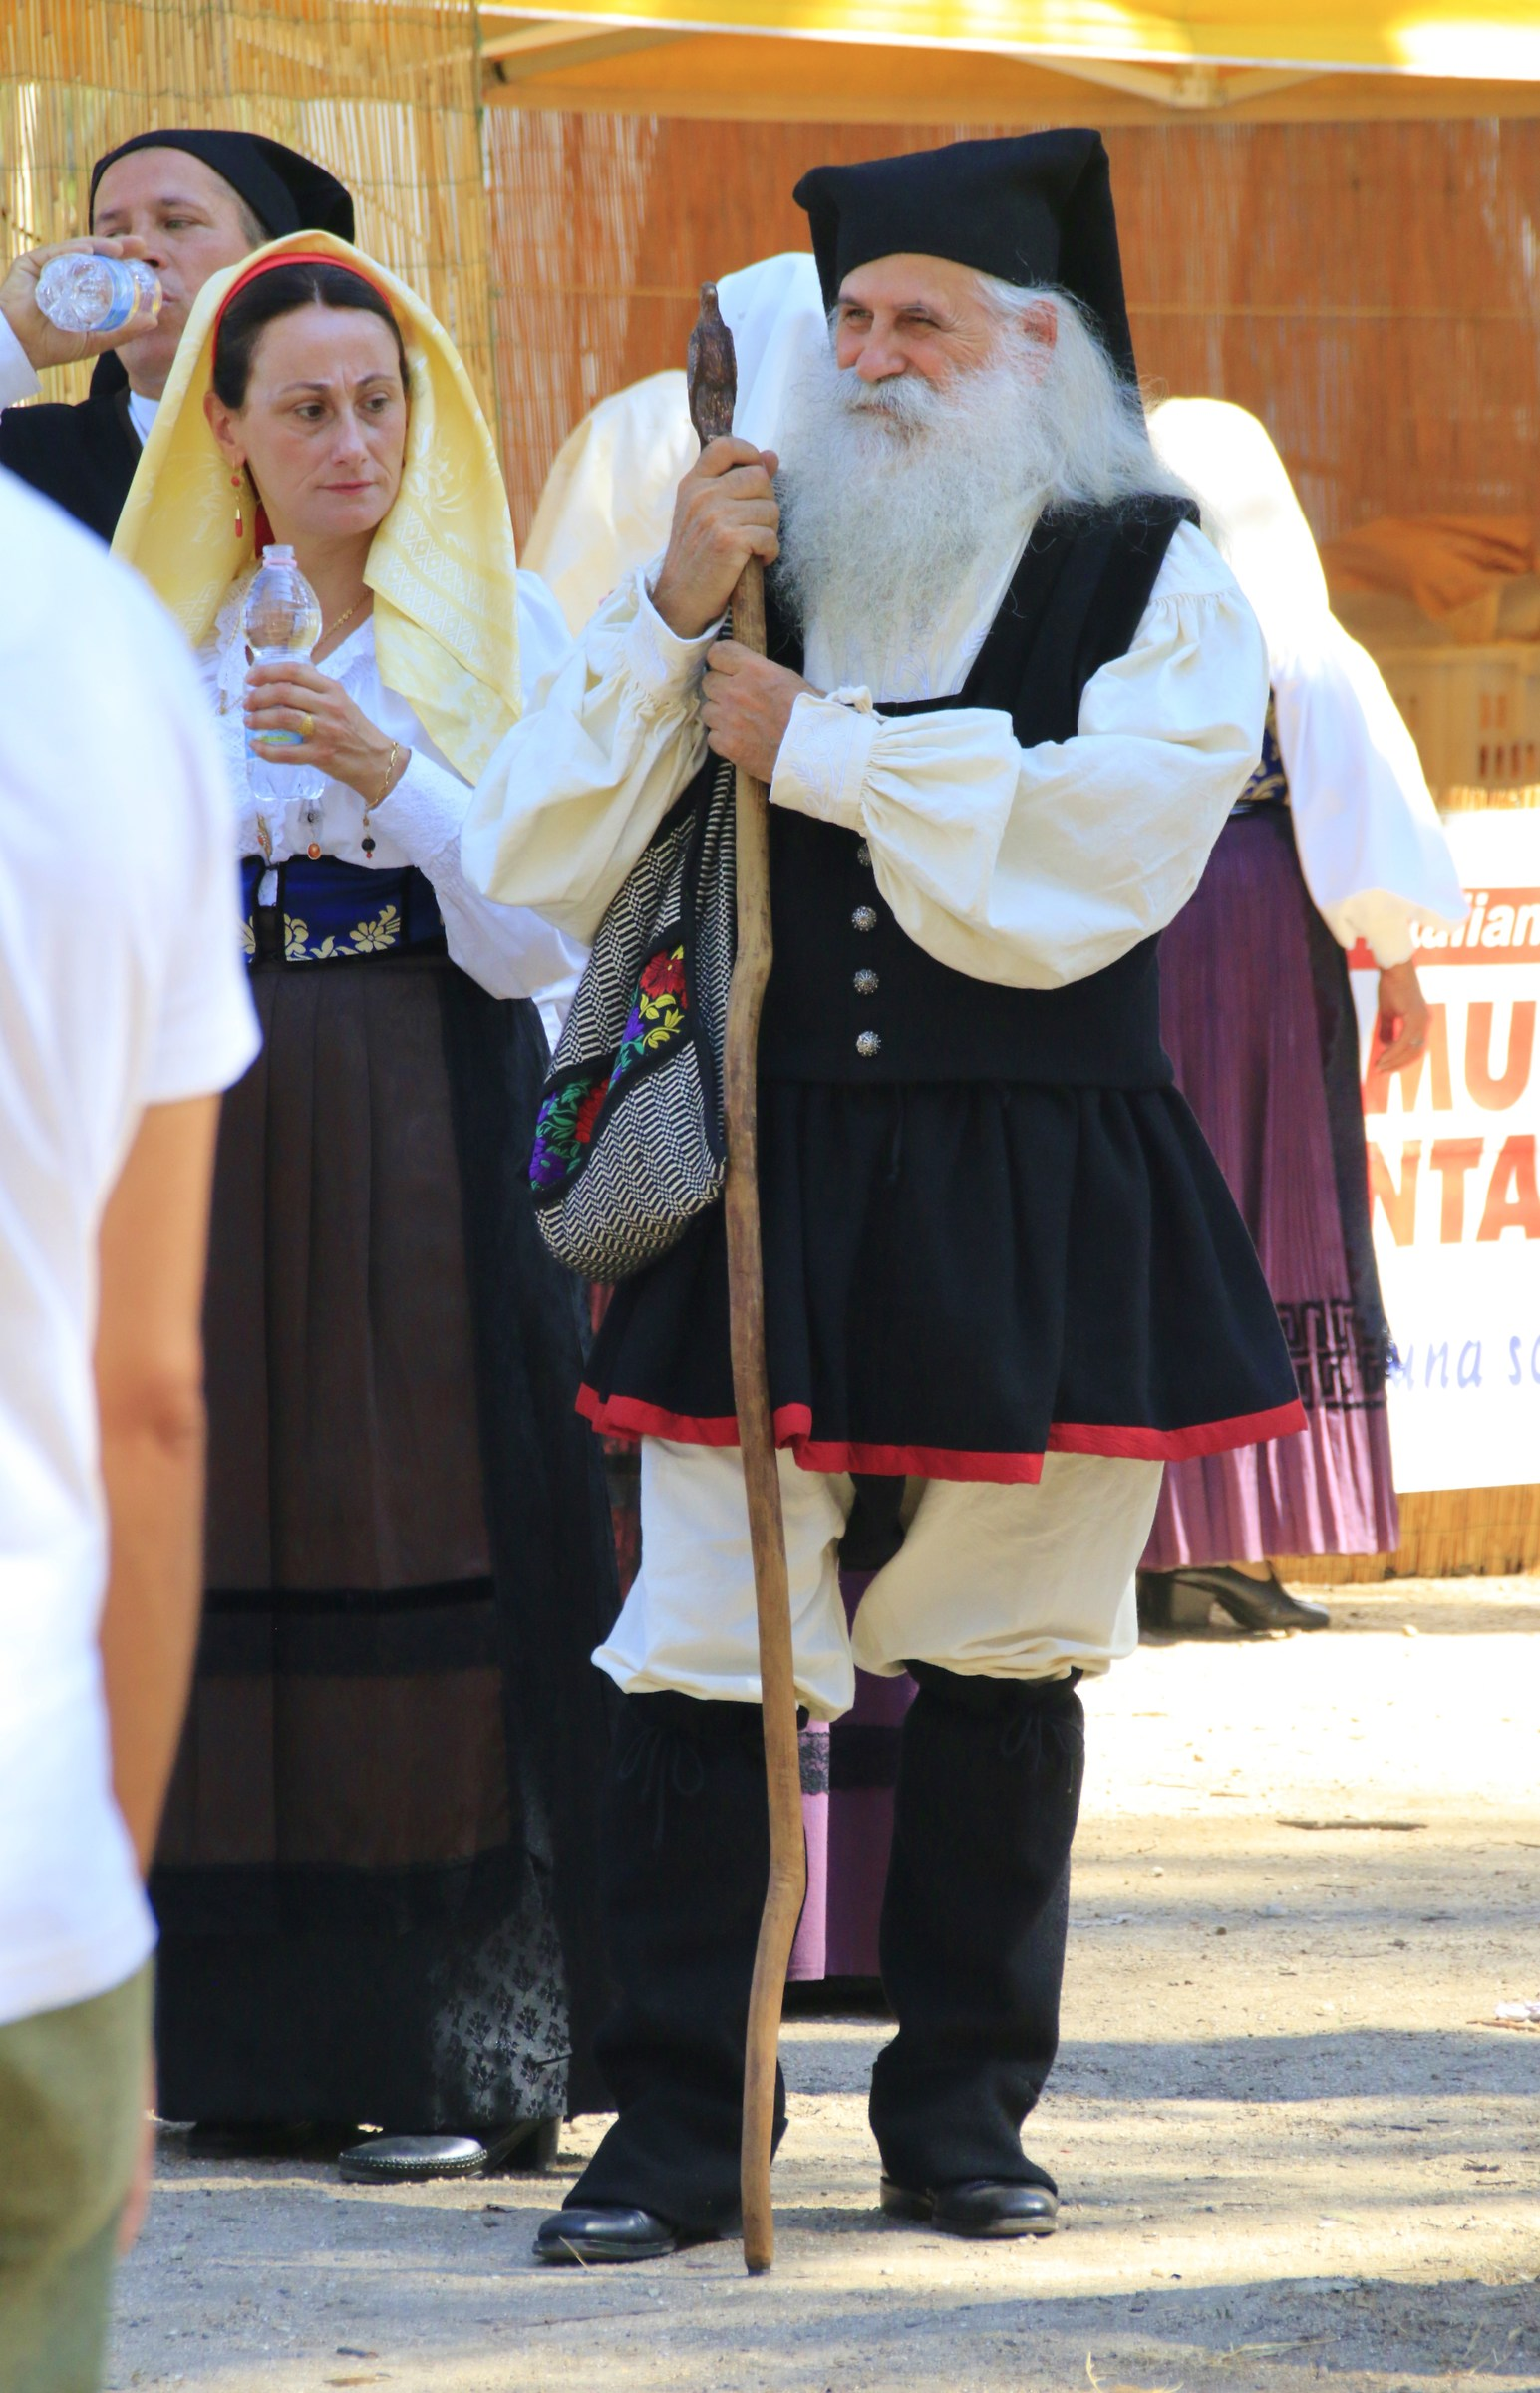 Hipster in Sardinian costumes...